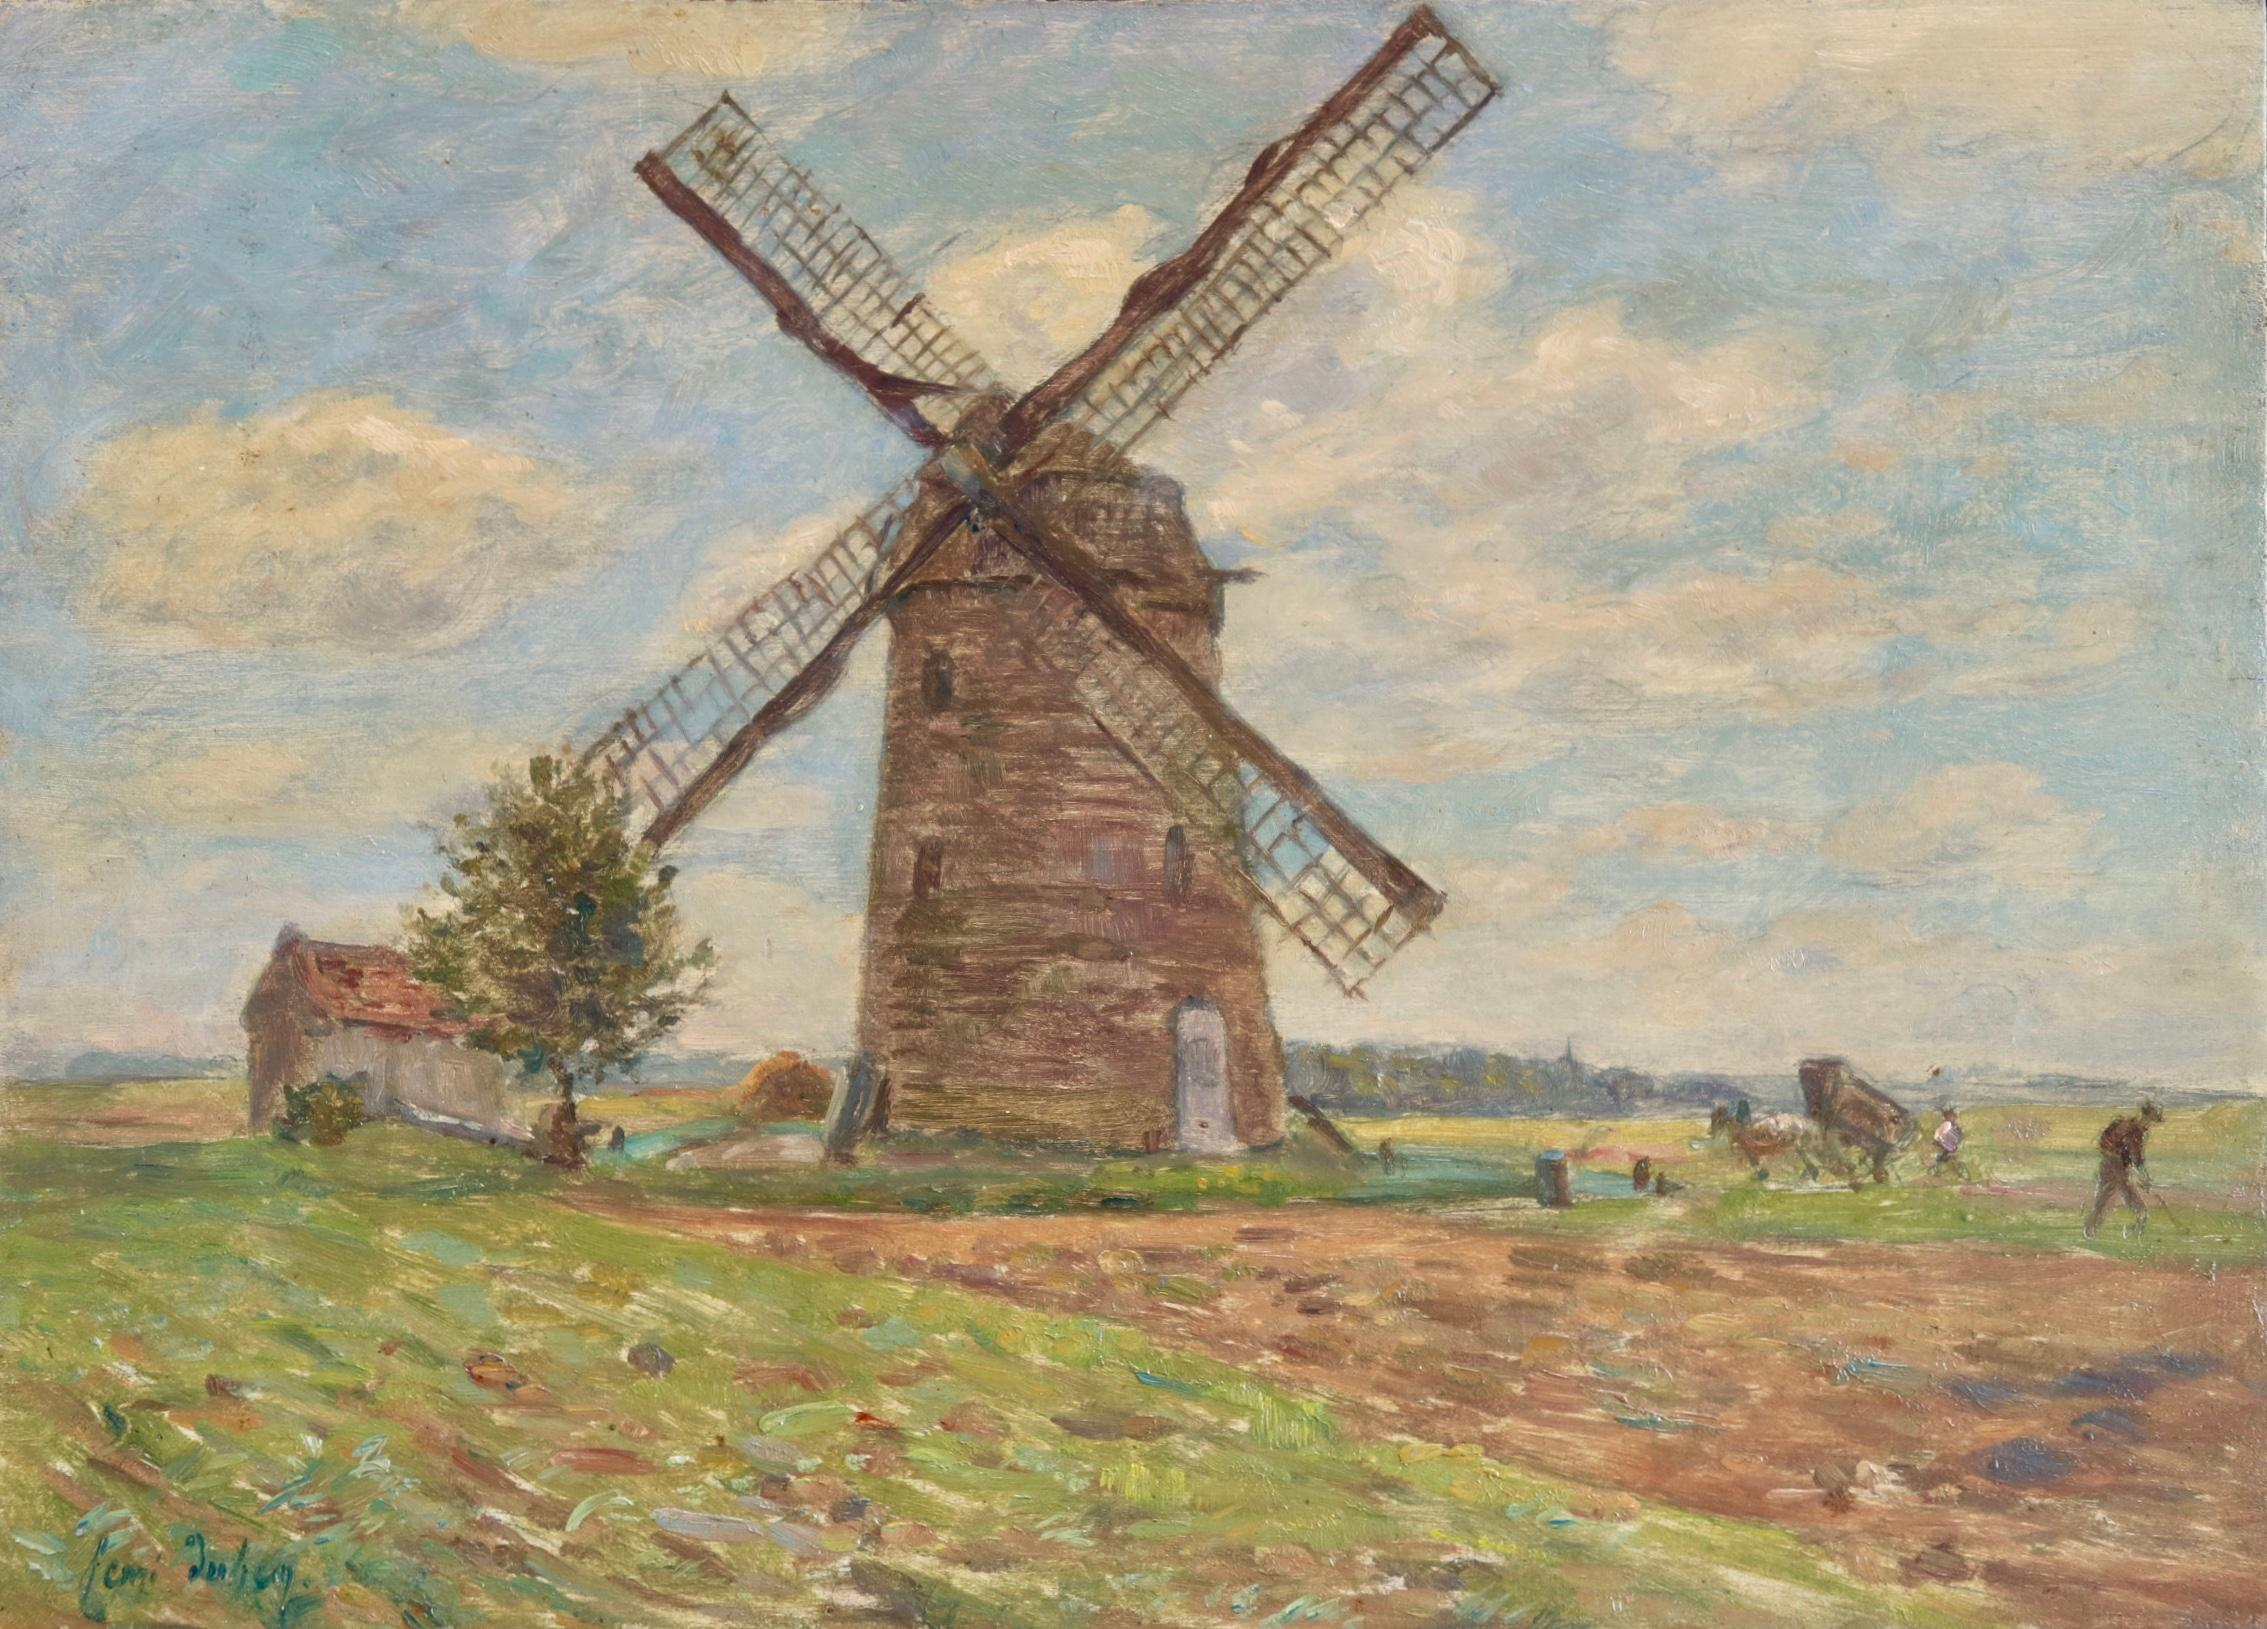 Moulin - French Impressionist Oil, Windmill in Landscape by Henri Duhem